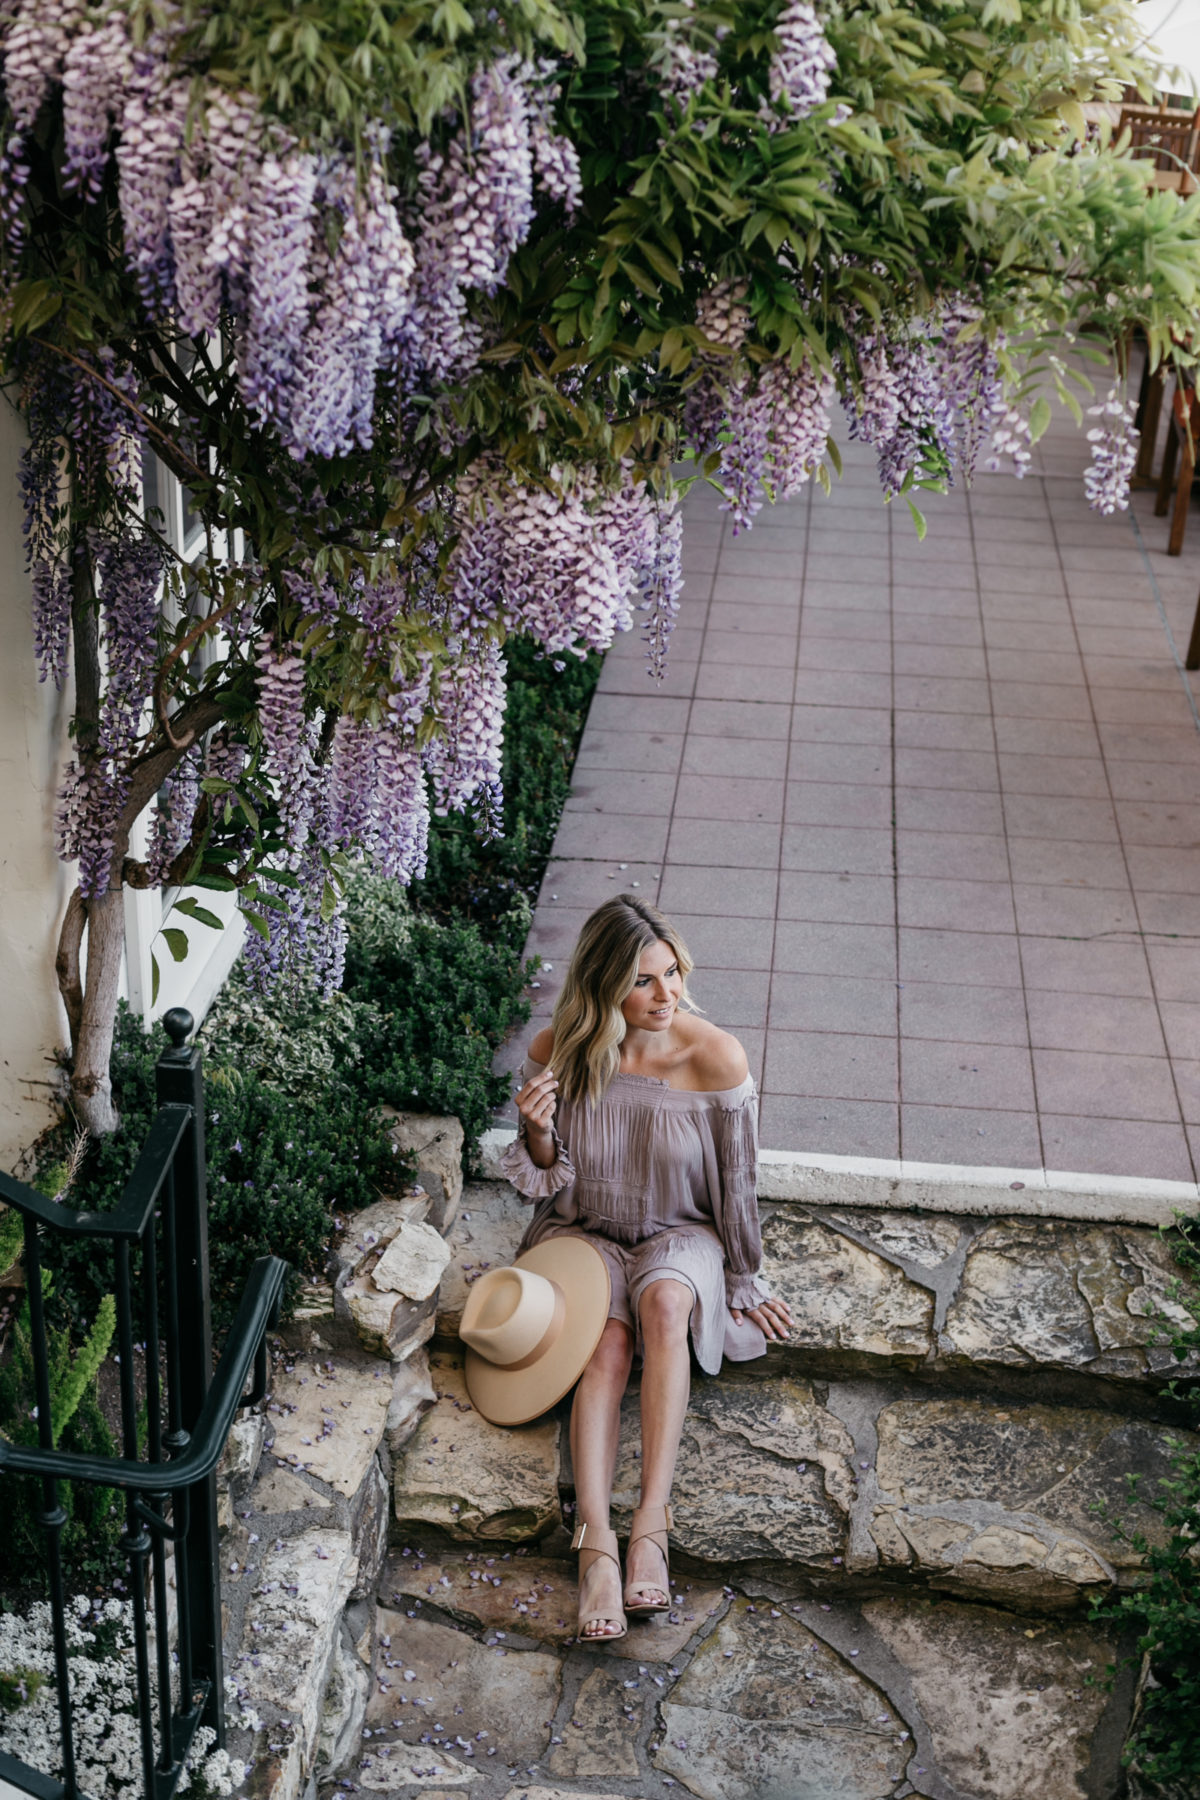 Brooke Burnett outfit details: Lavender Off The Shoulder Dress // Wide Brimmed Hat // Open Toed Cross Tan Heels